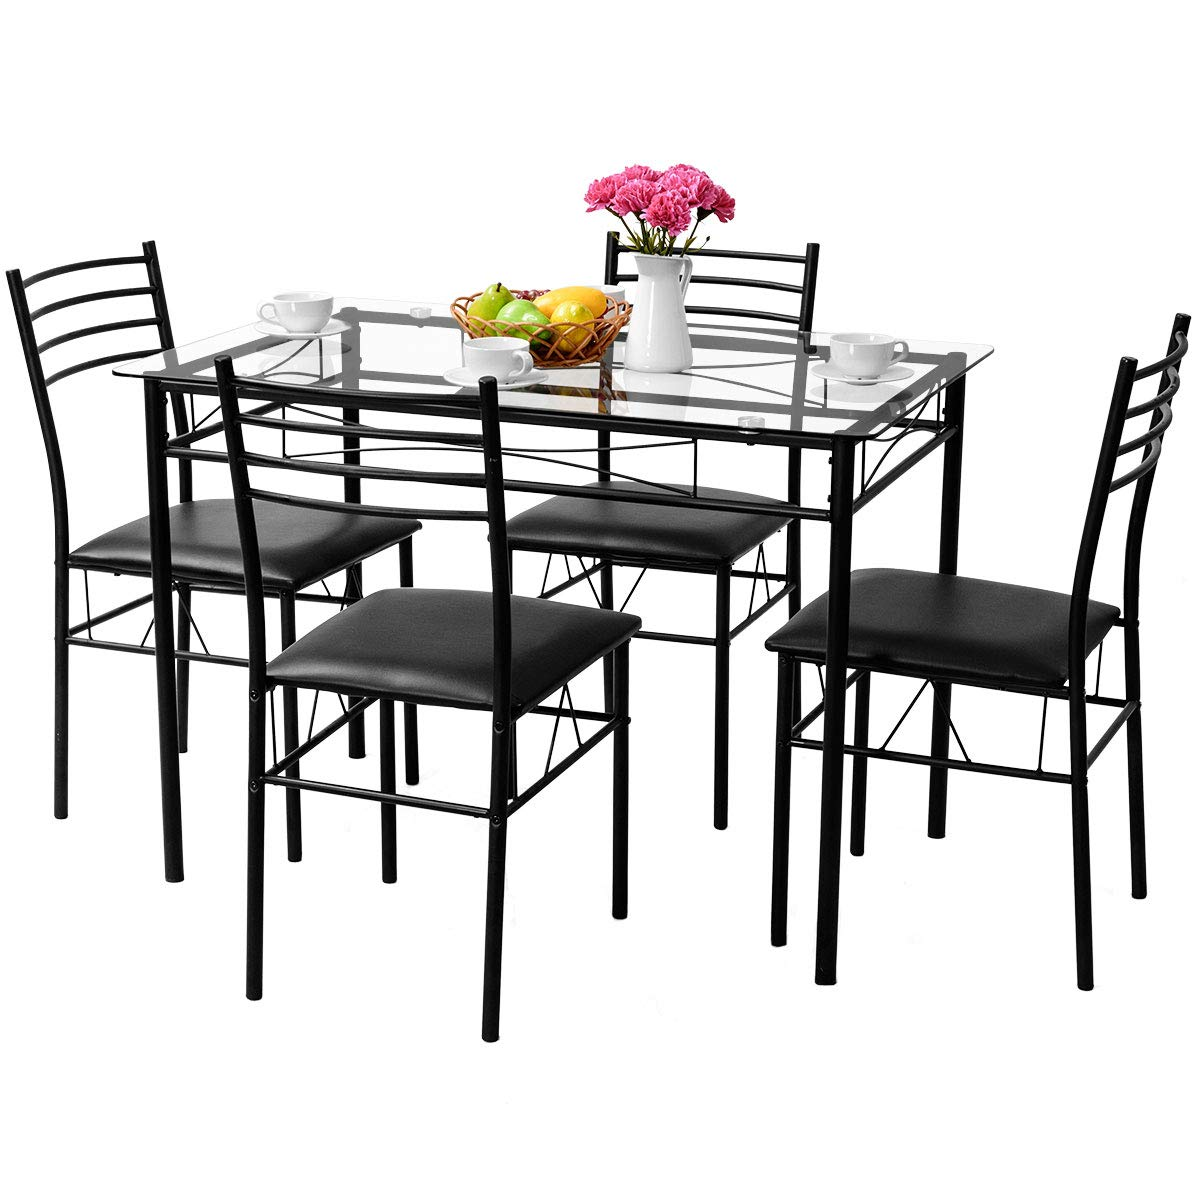 Tangkula Dining Table Set 5 Pieces Home Kitchen Dining Room Tempered Glass Top Table And Chairs Breaksfast Furniture Dinning Table With Chairs Black